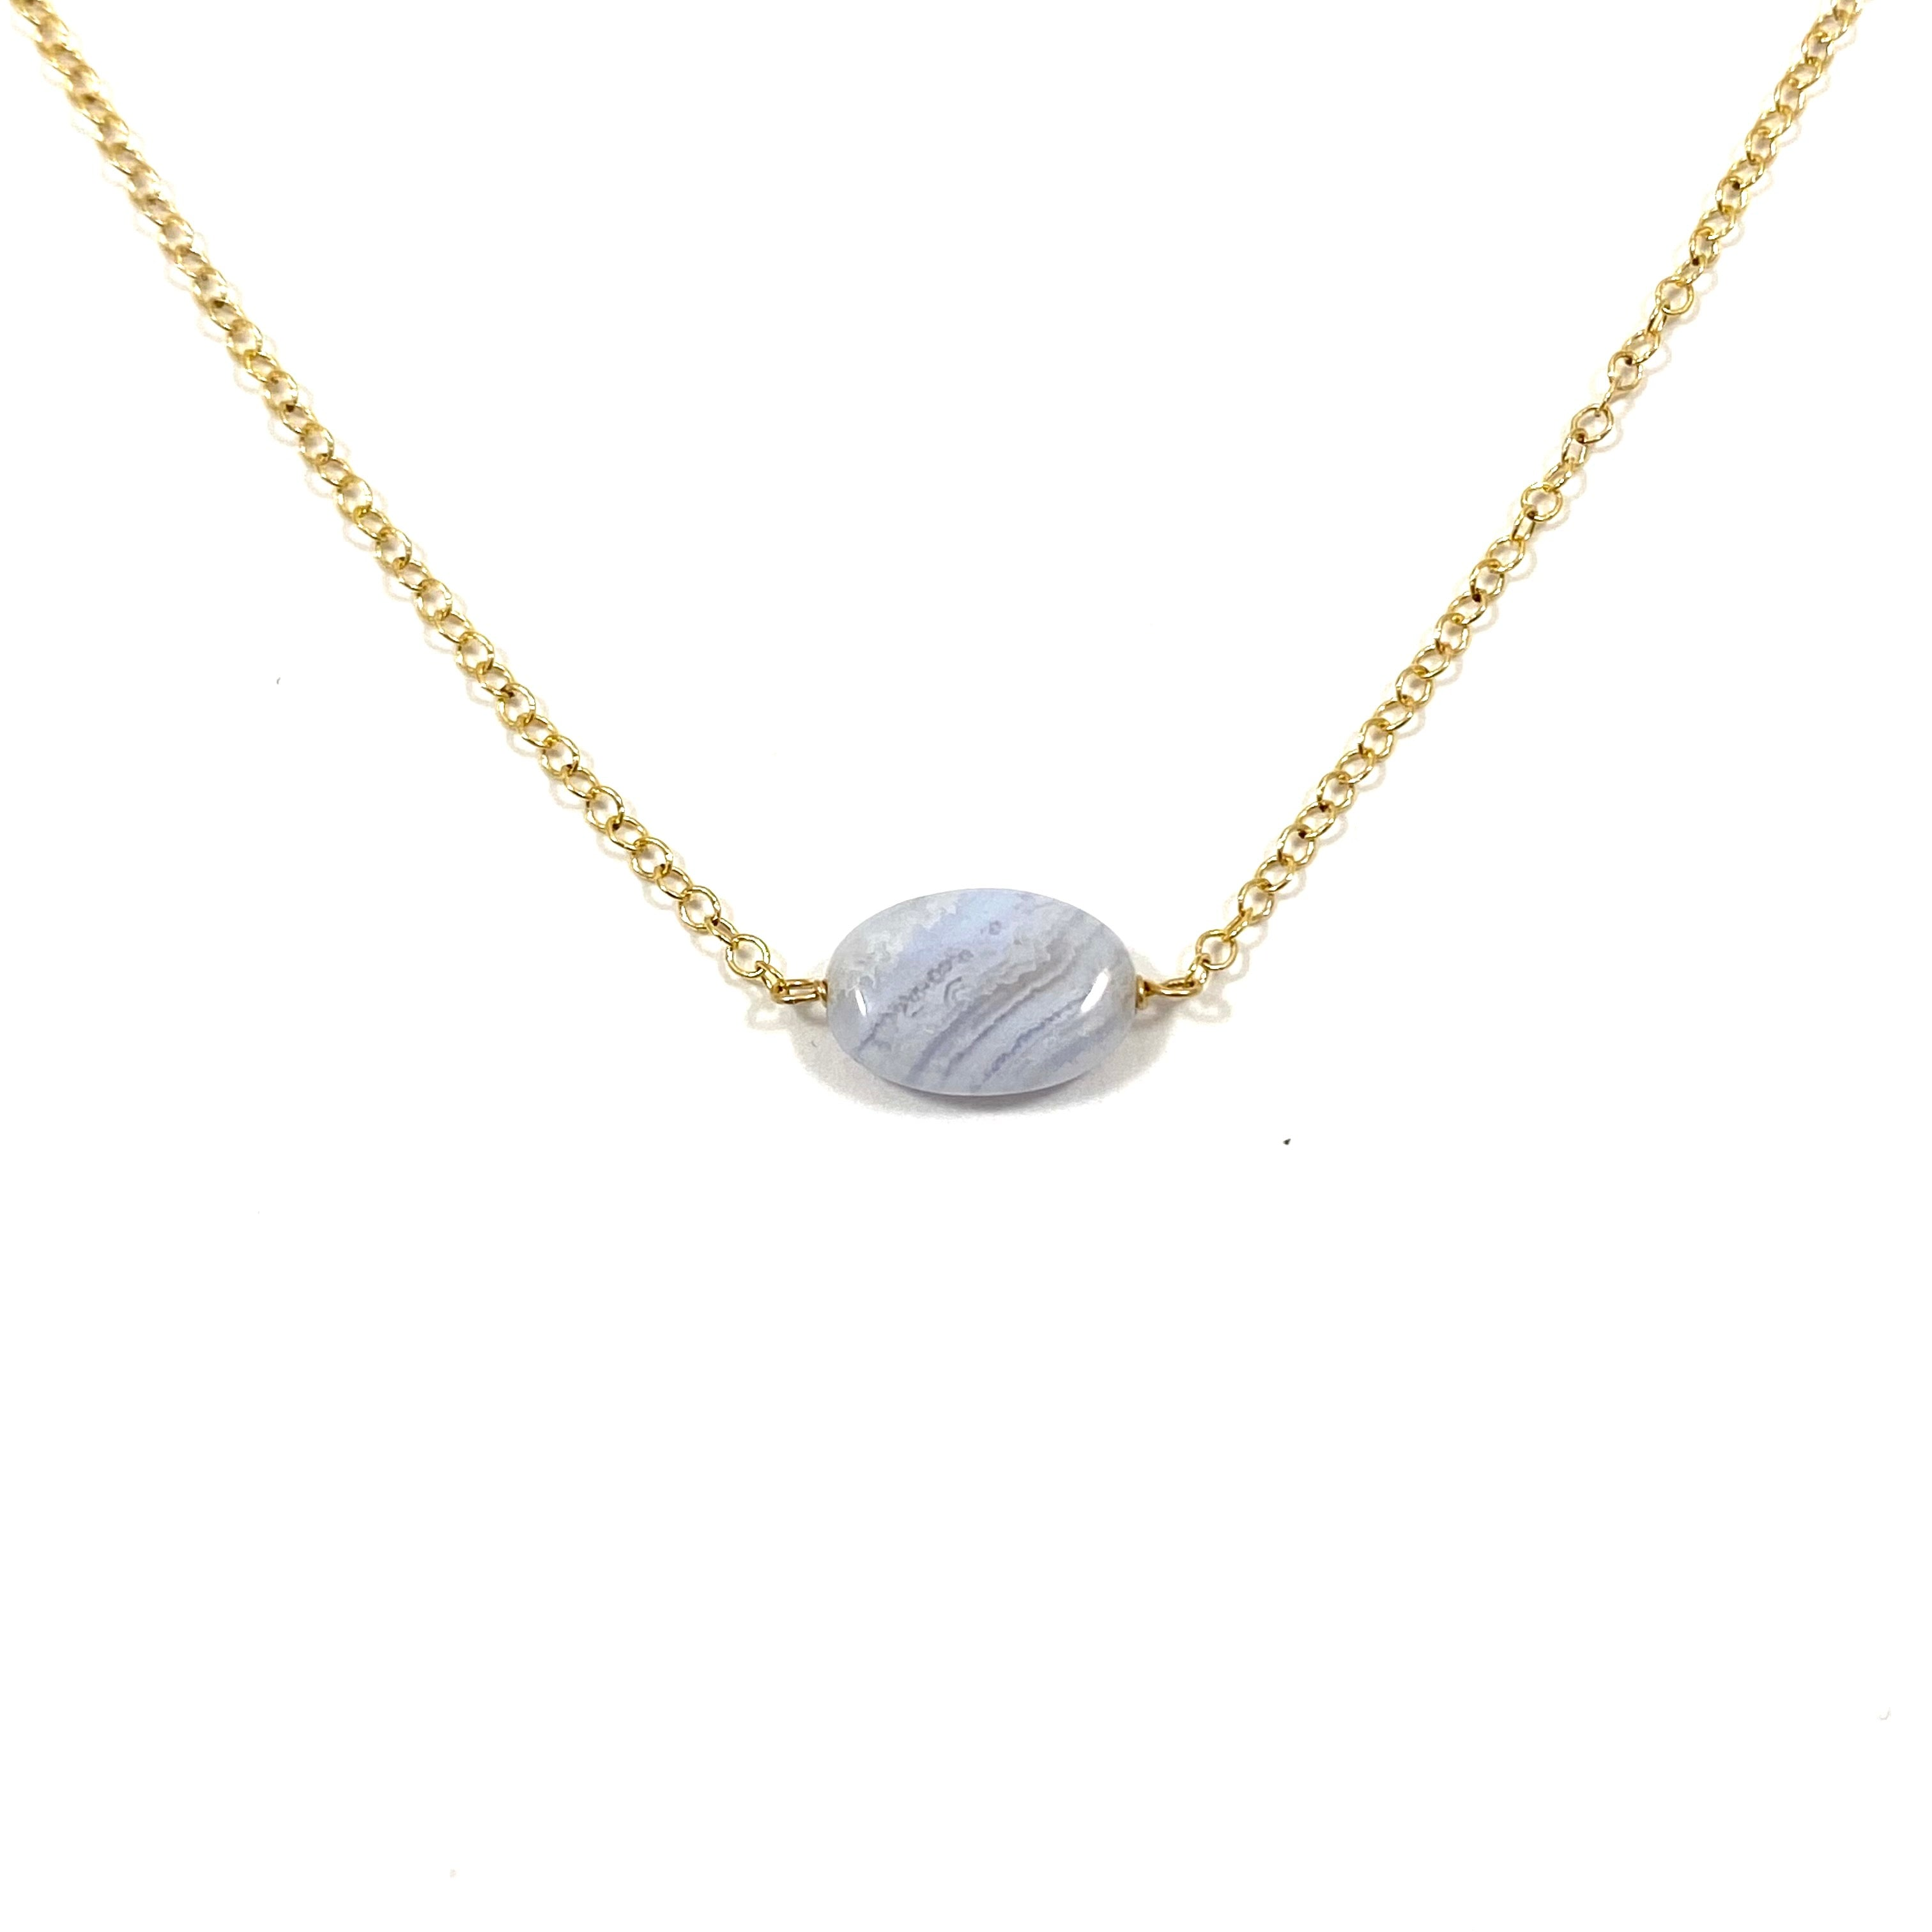 Something Blue Blue Lace Agate Oval Necklace